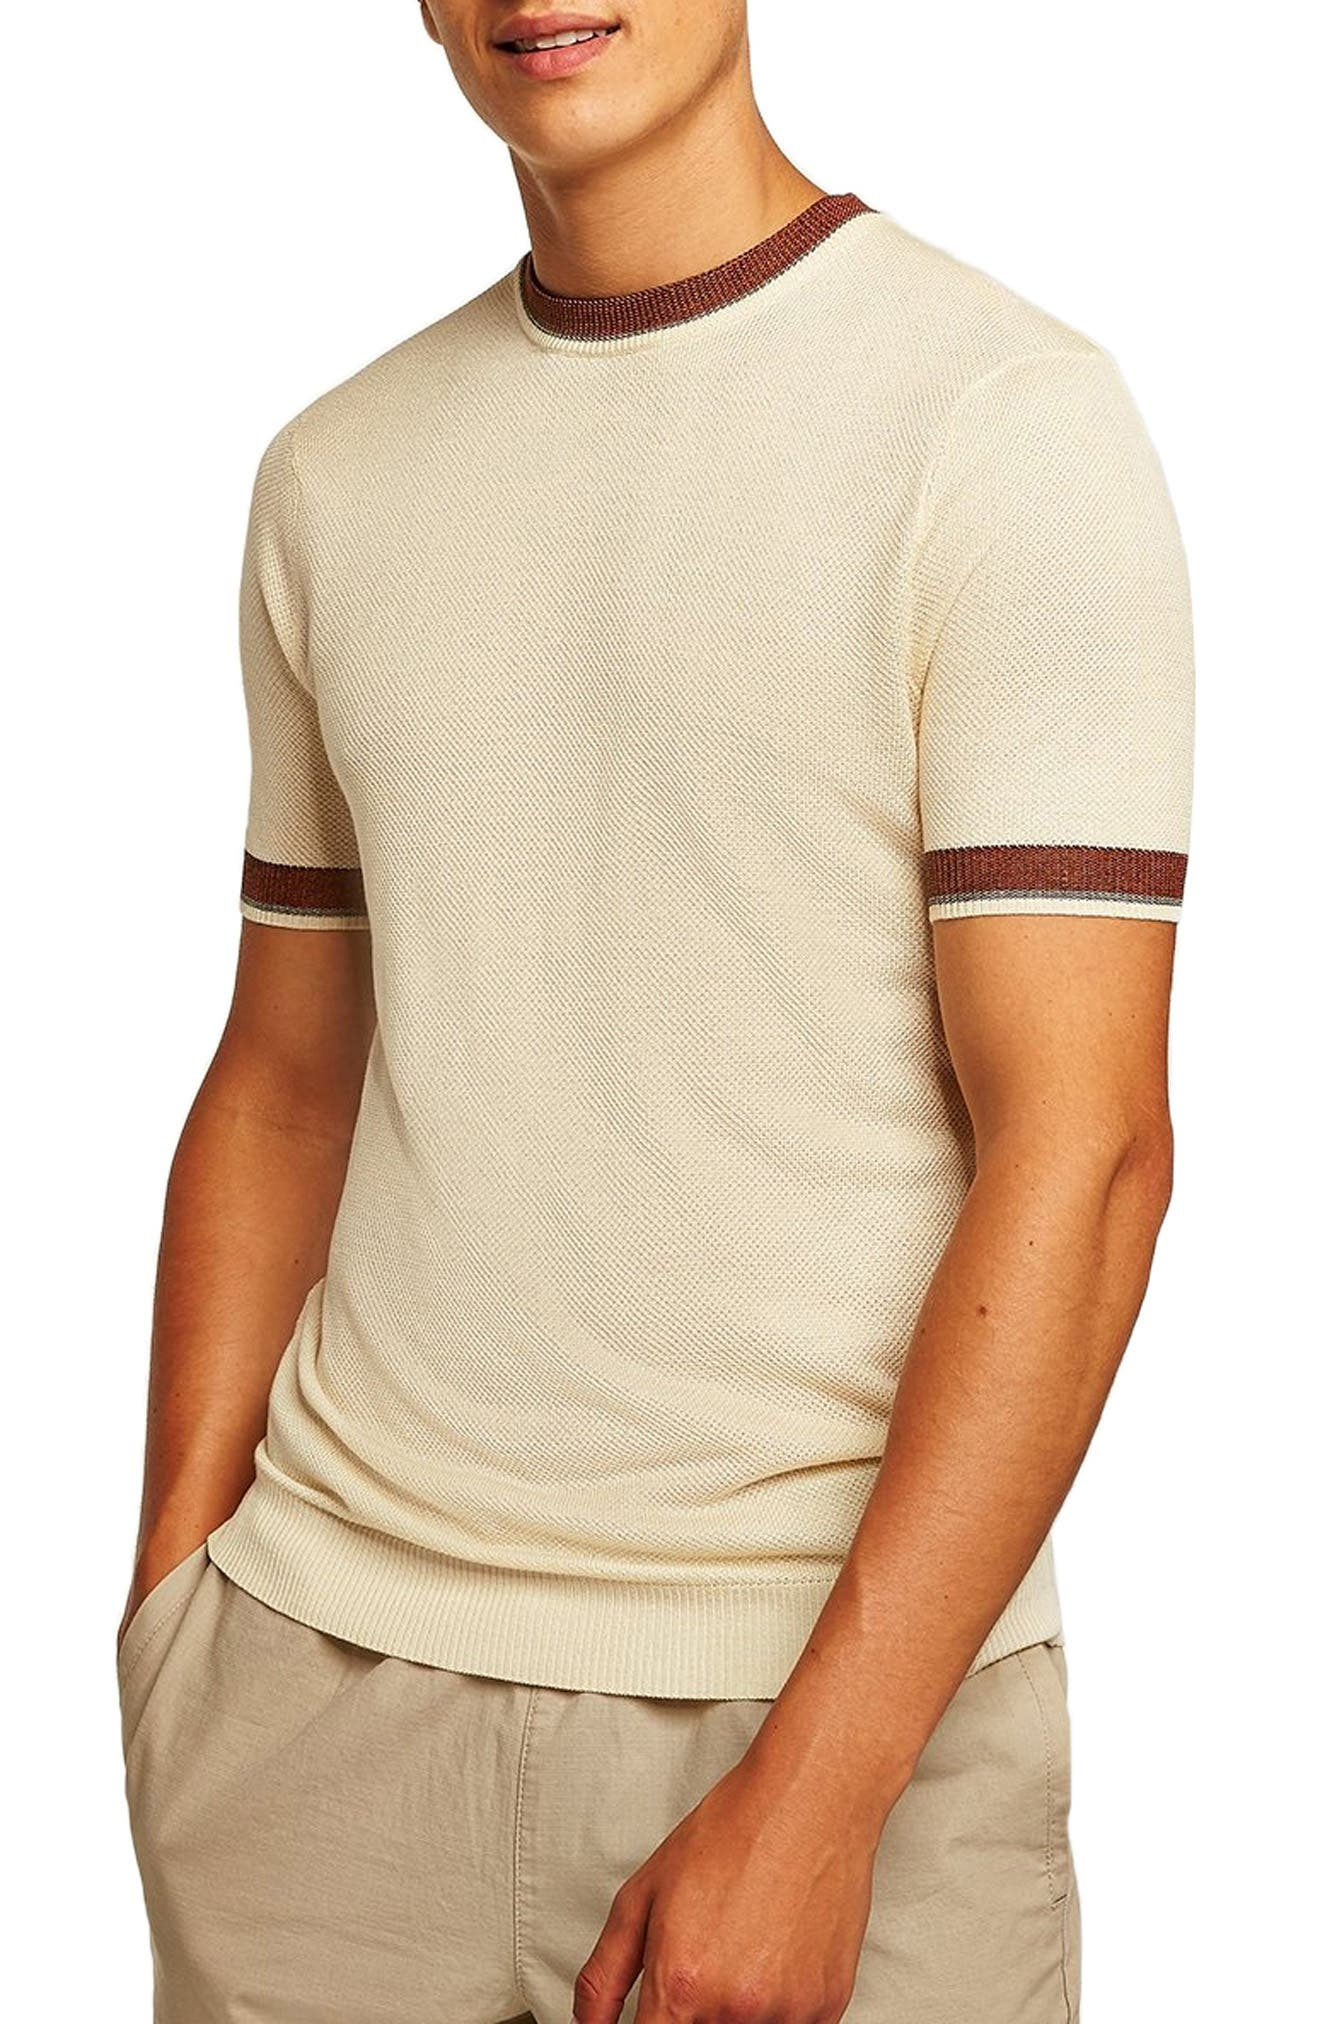 Tipping Classic Fit Short Sleeve Sweater,                         Main,                         color, CREAM